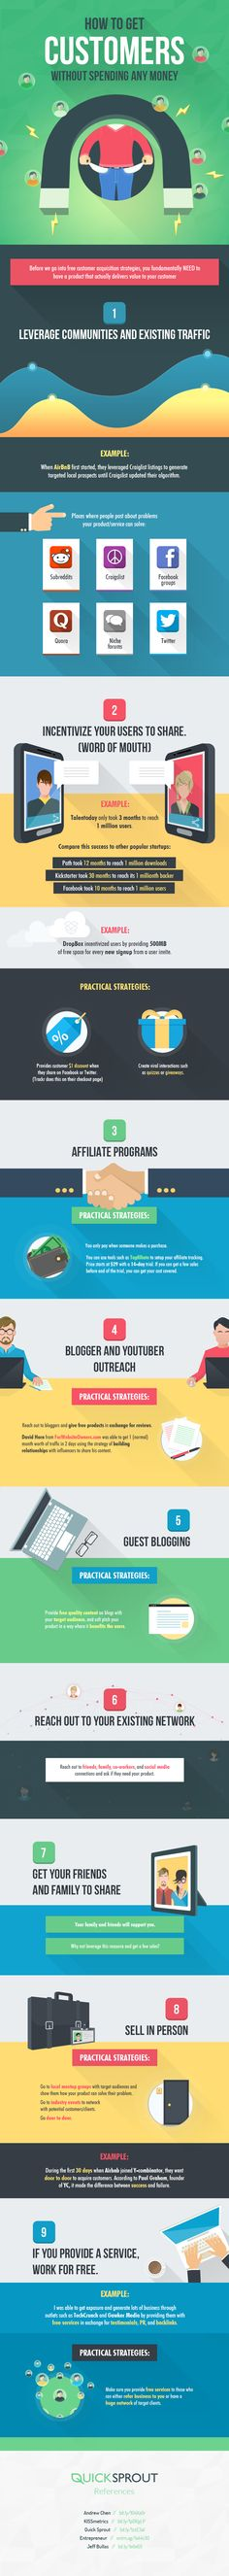 How To Get Customers (Without Spending Any Money) - #infographic #marketing